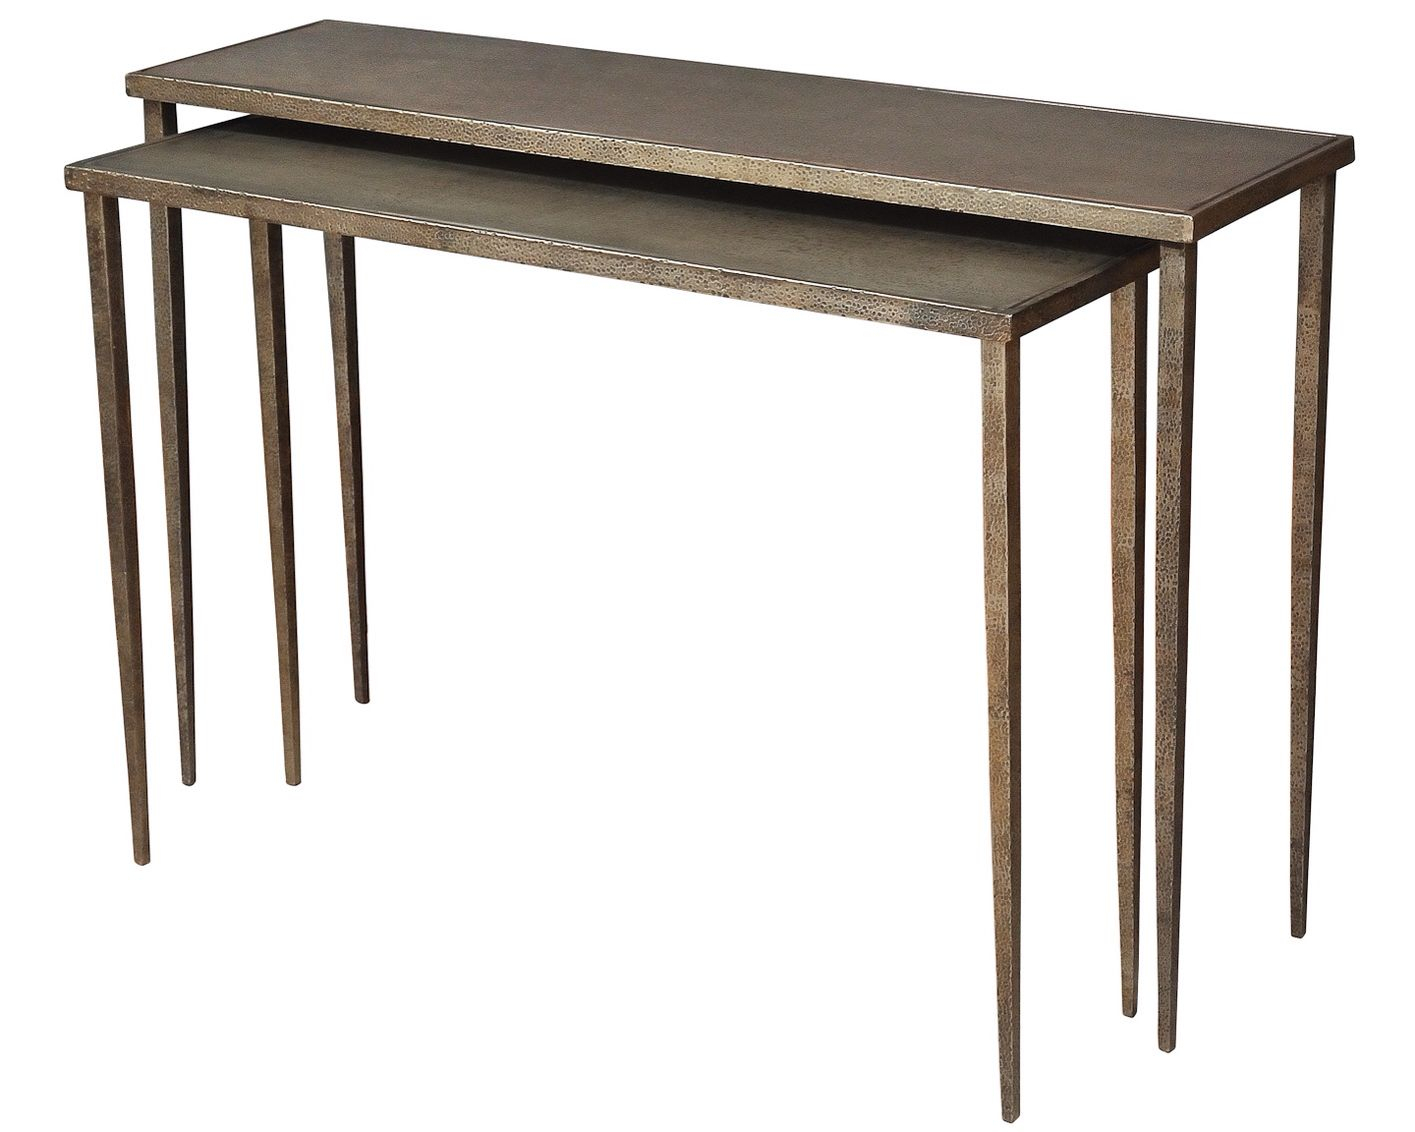 Hammered Sheet Metal Console Tables | My Designs | Pinterest For Silviano 84 Inch Console Tables (View 15 of 30)